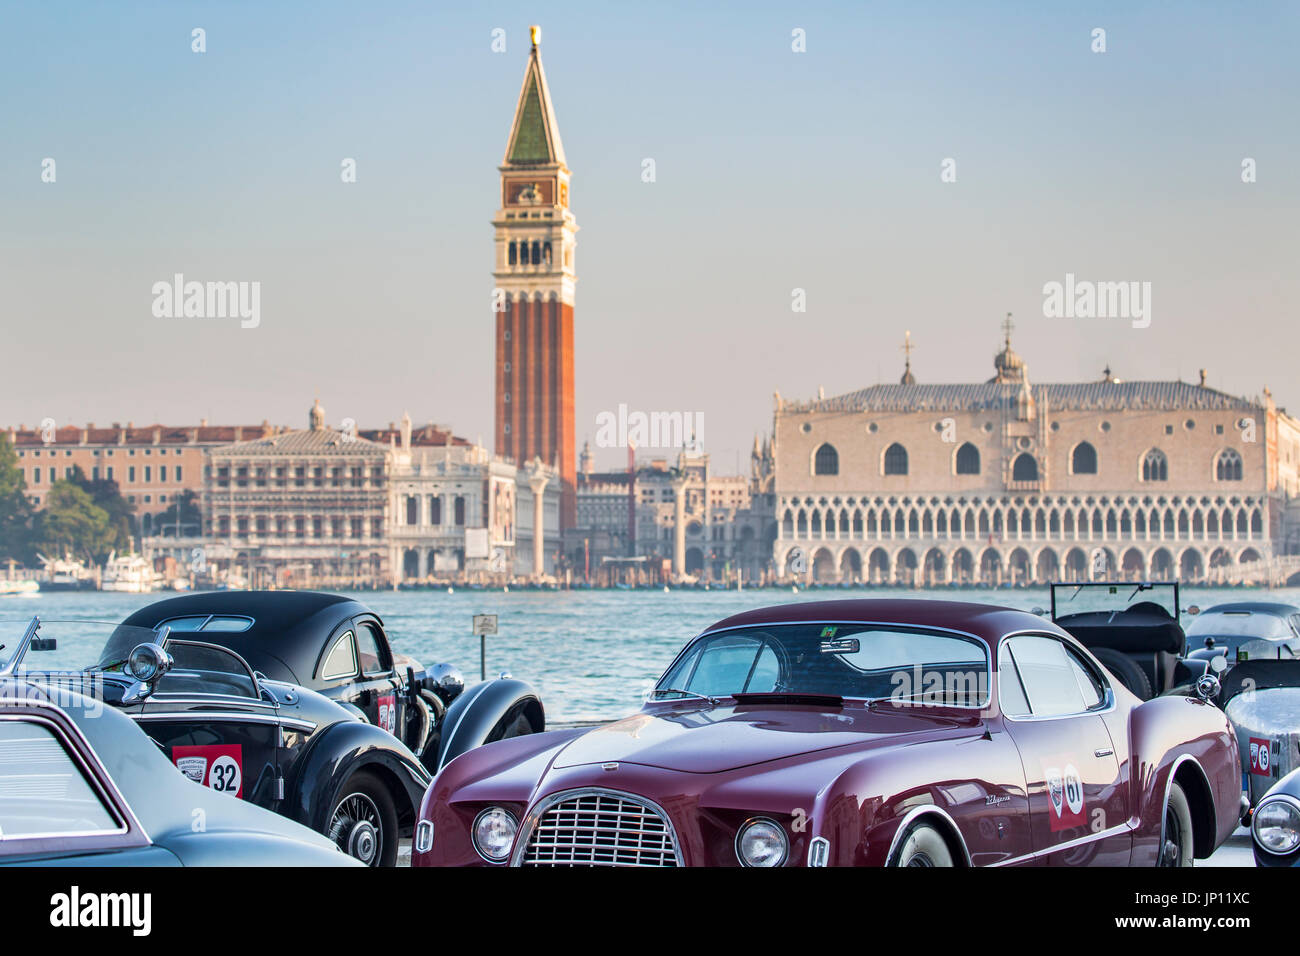 Venice, Italy - April 27, 2012: A vintage car show on the Isola de ...